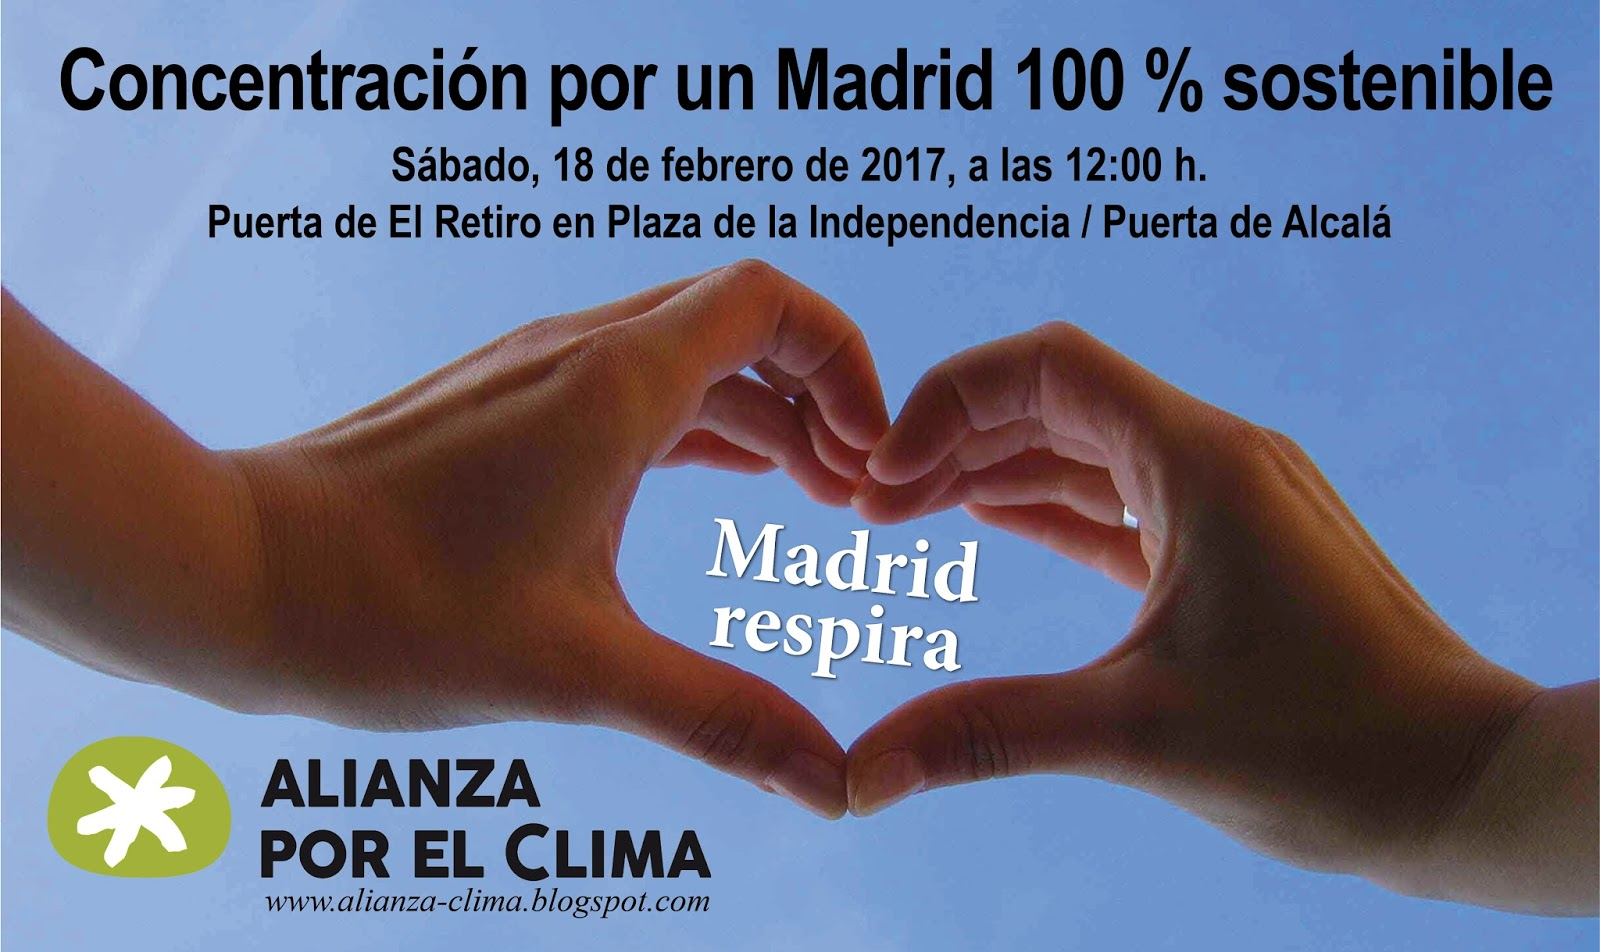 Ir a Madrid: Concentración por un Madrid 100 % sostenible